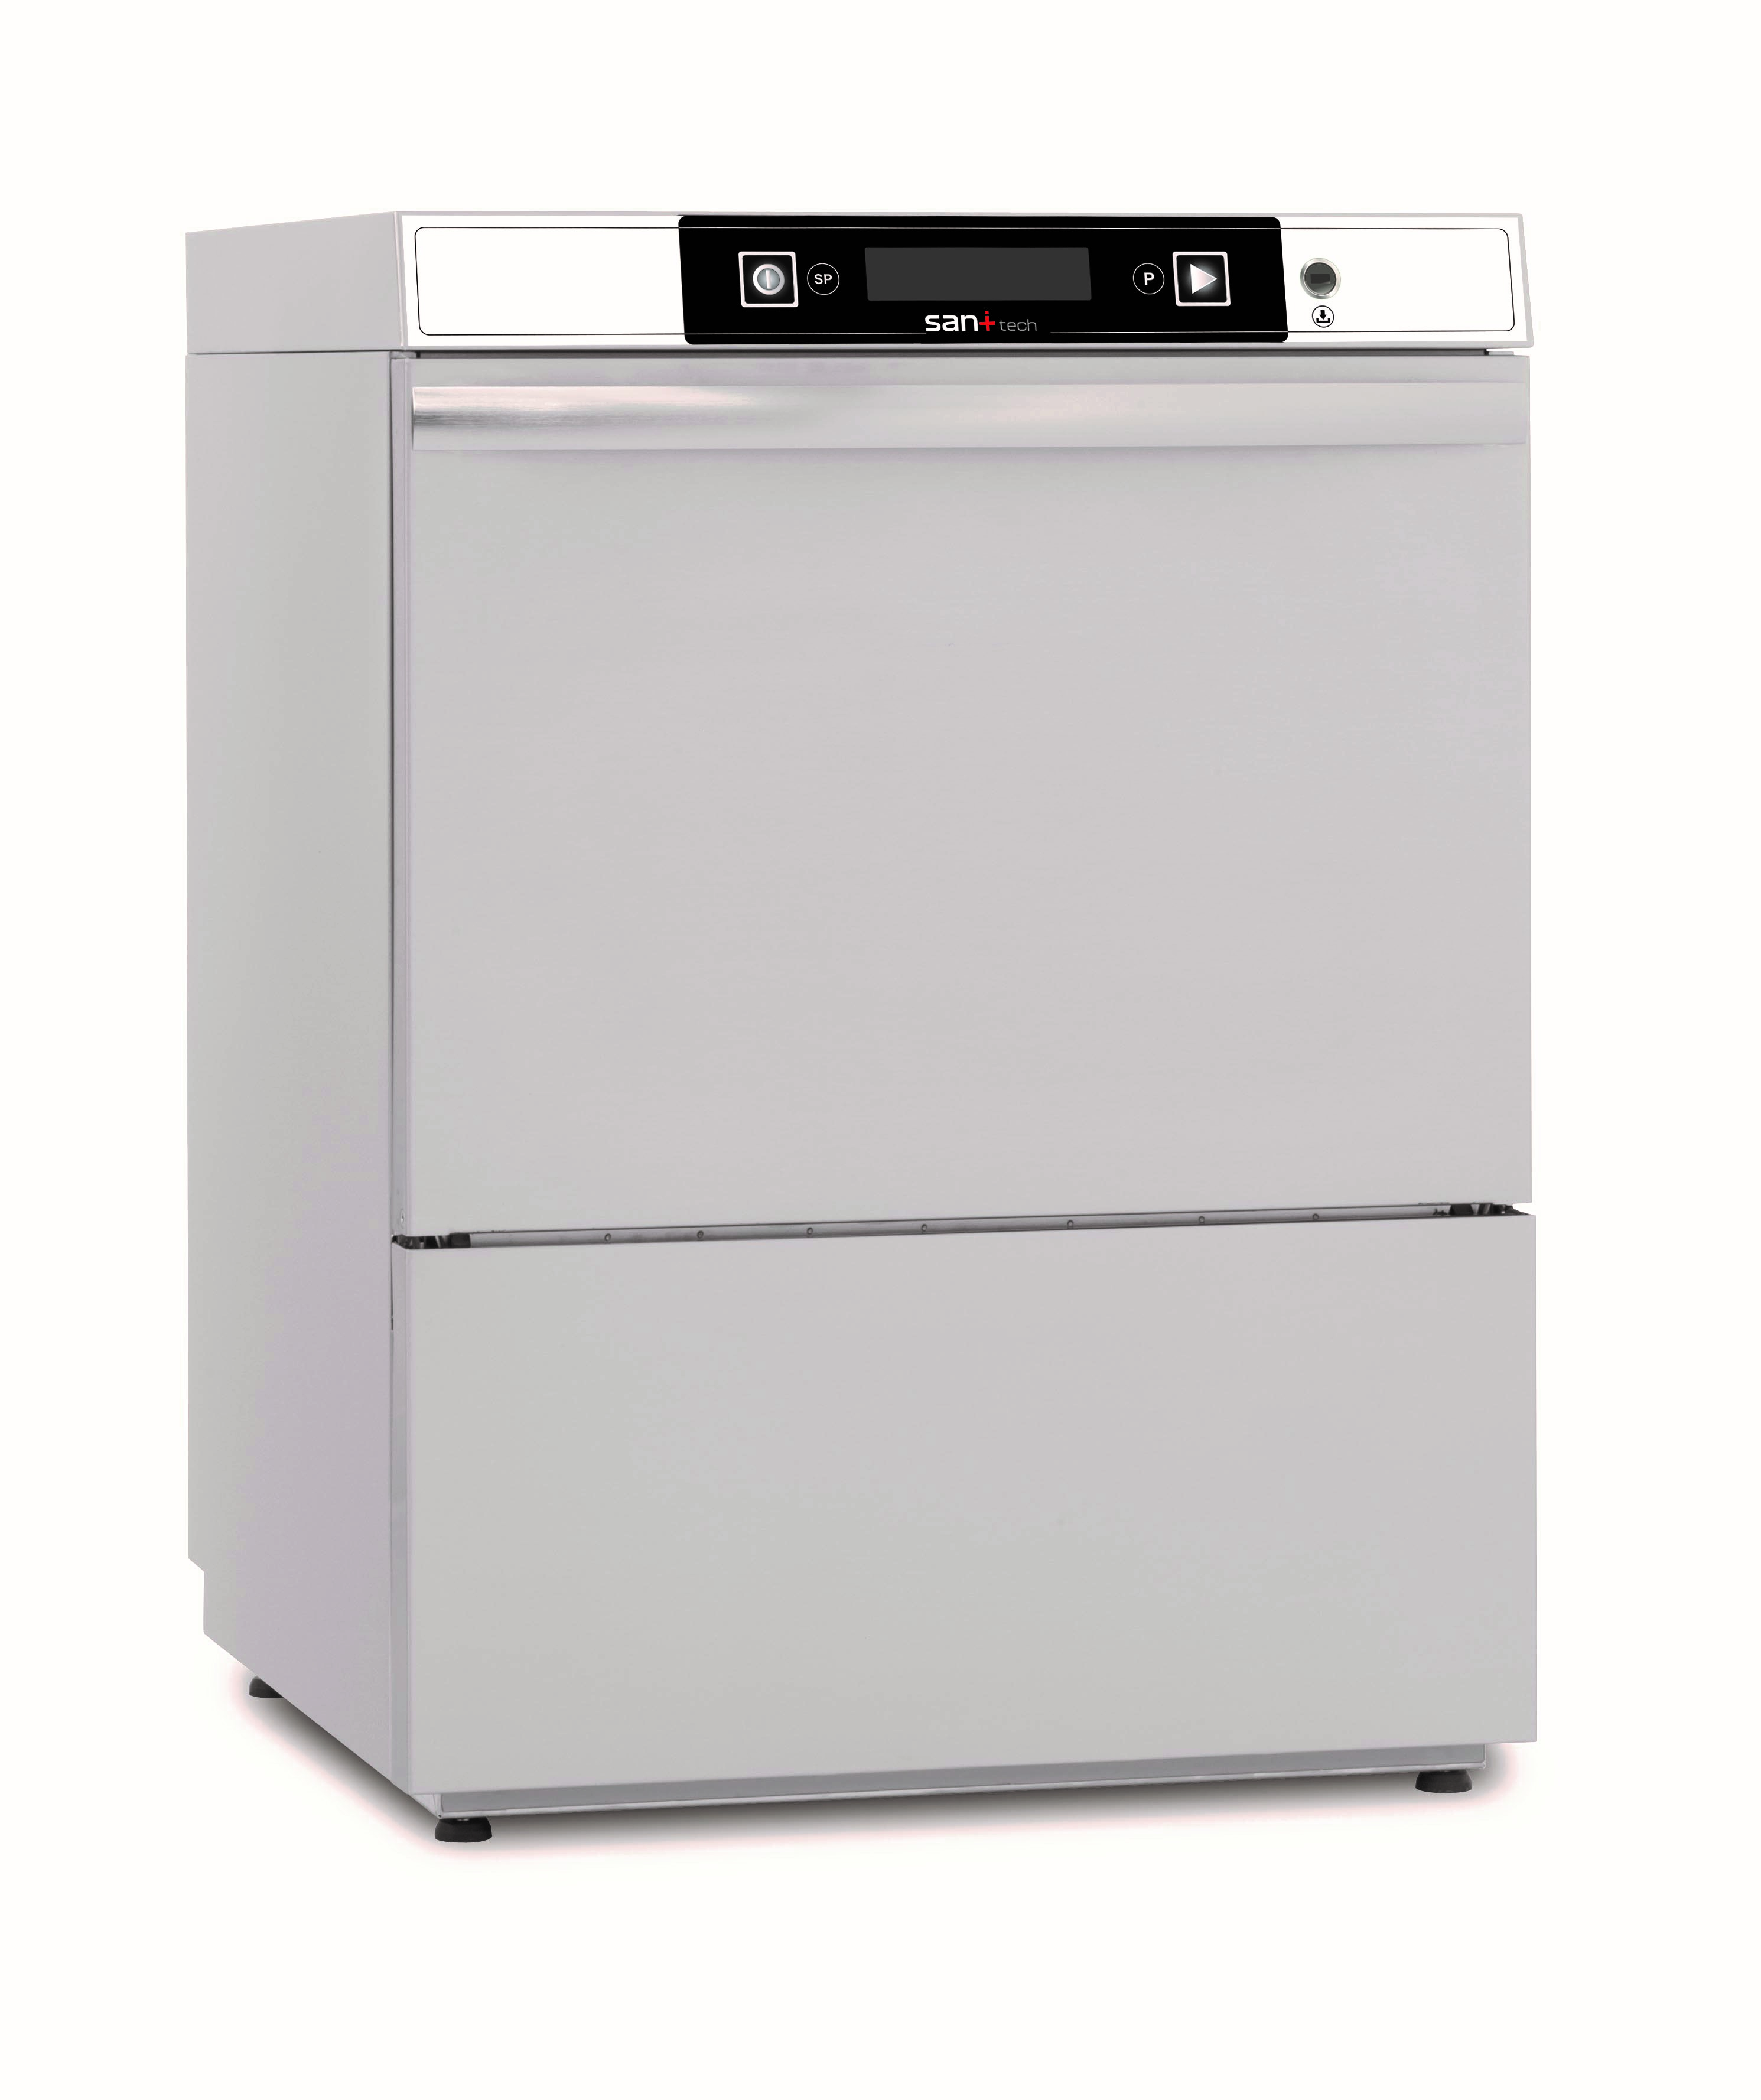 Commercial or Professional Dishwasher image